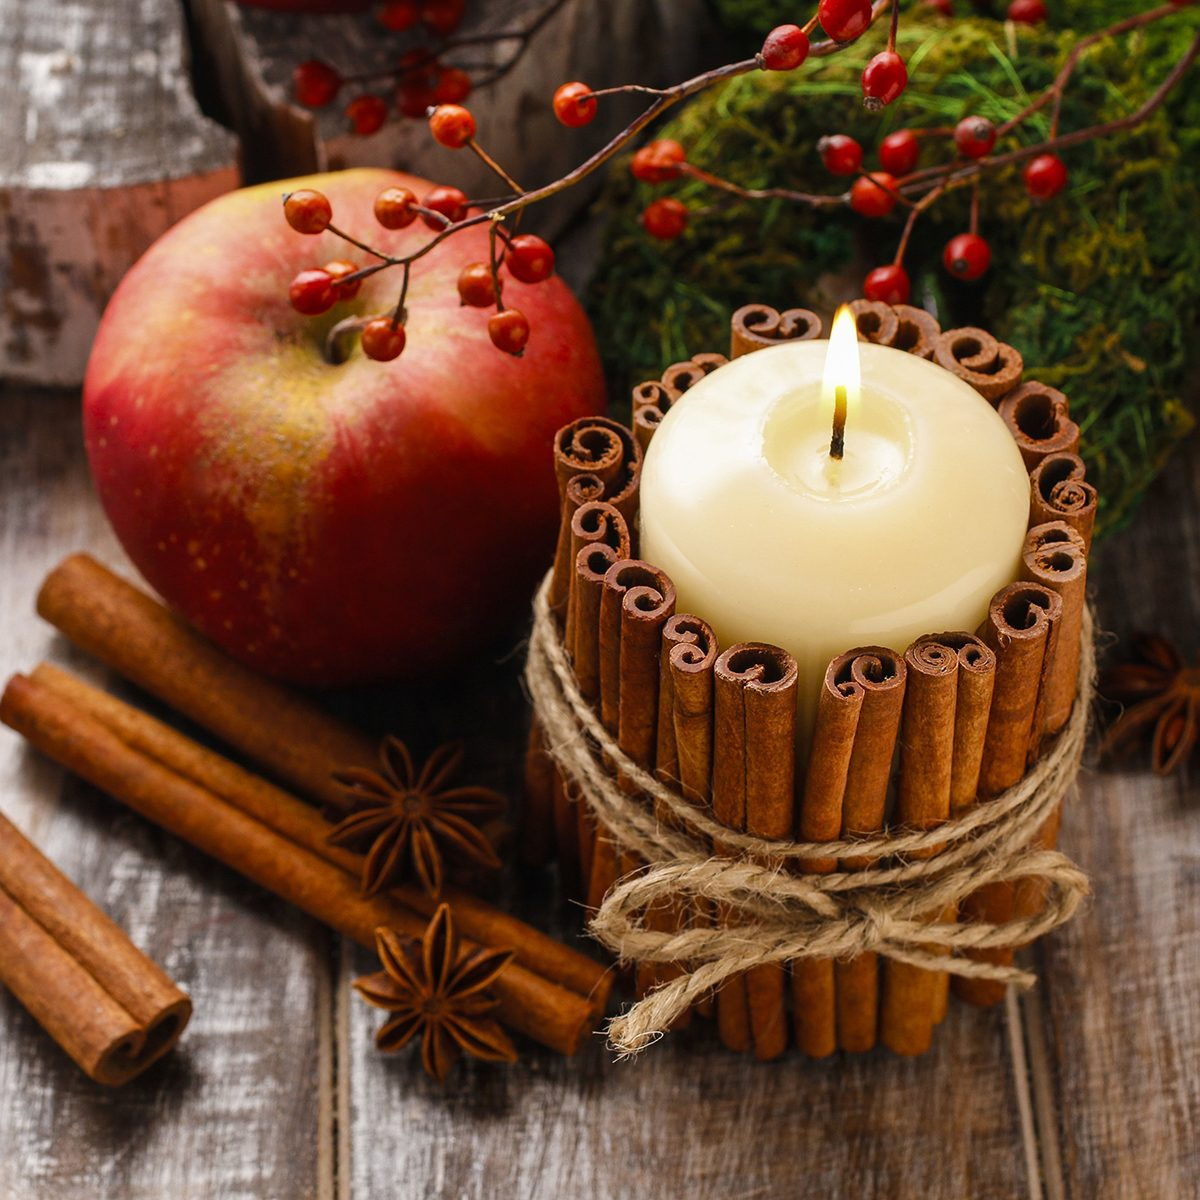 Candle decorated with cinnamon sticks and red apples, christmas decoration